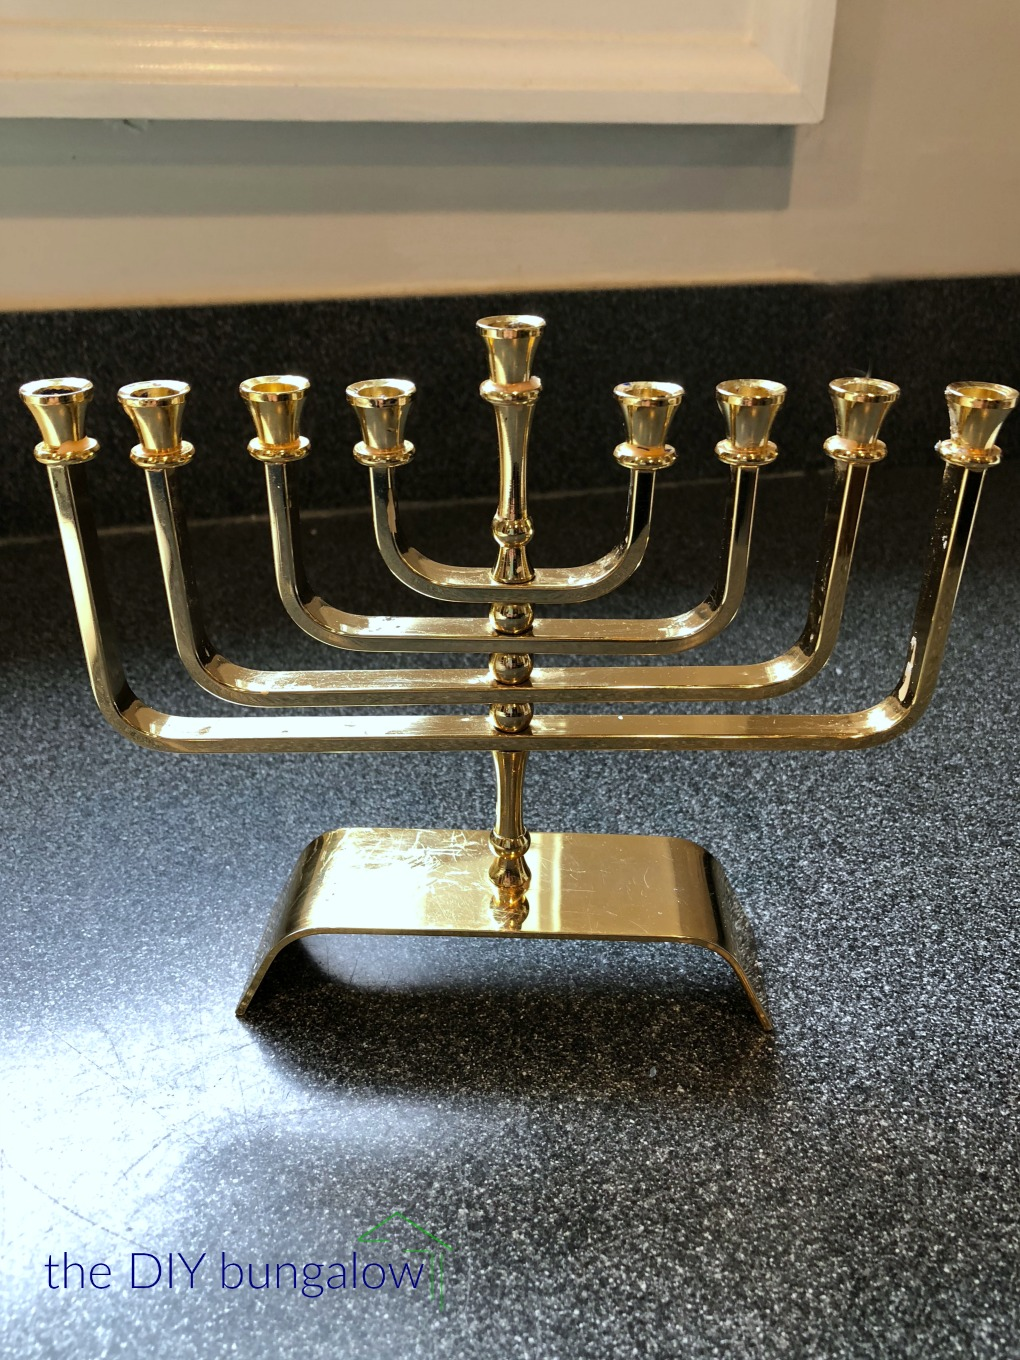 Shiny and clean after using the easiest way to clean wax off a menorah